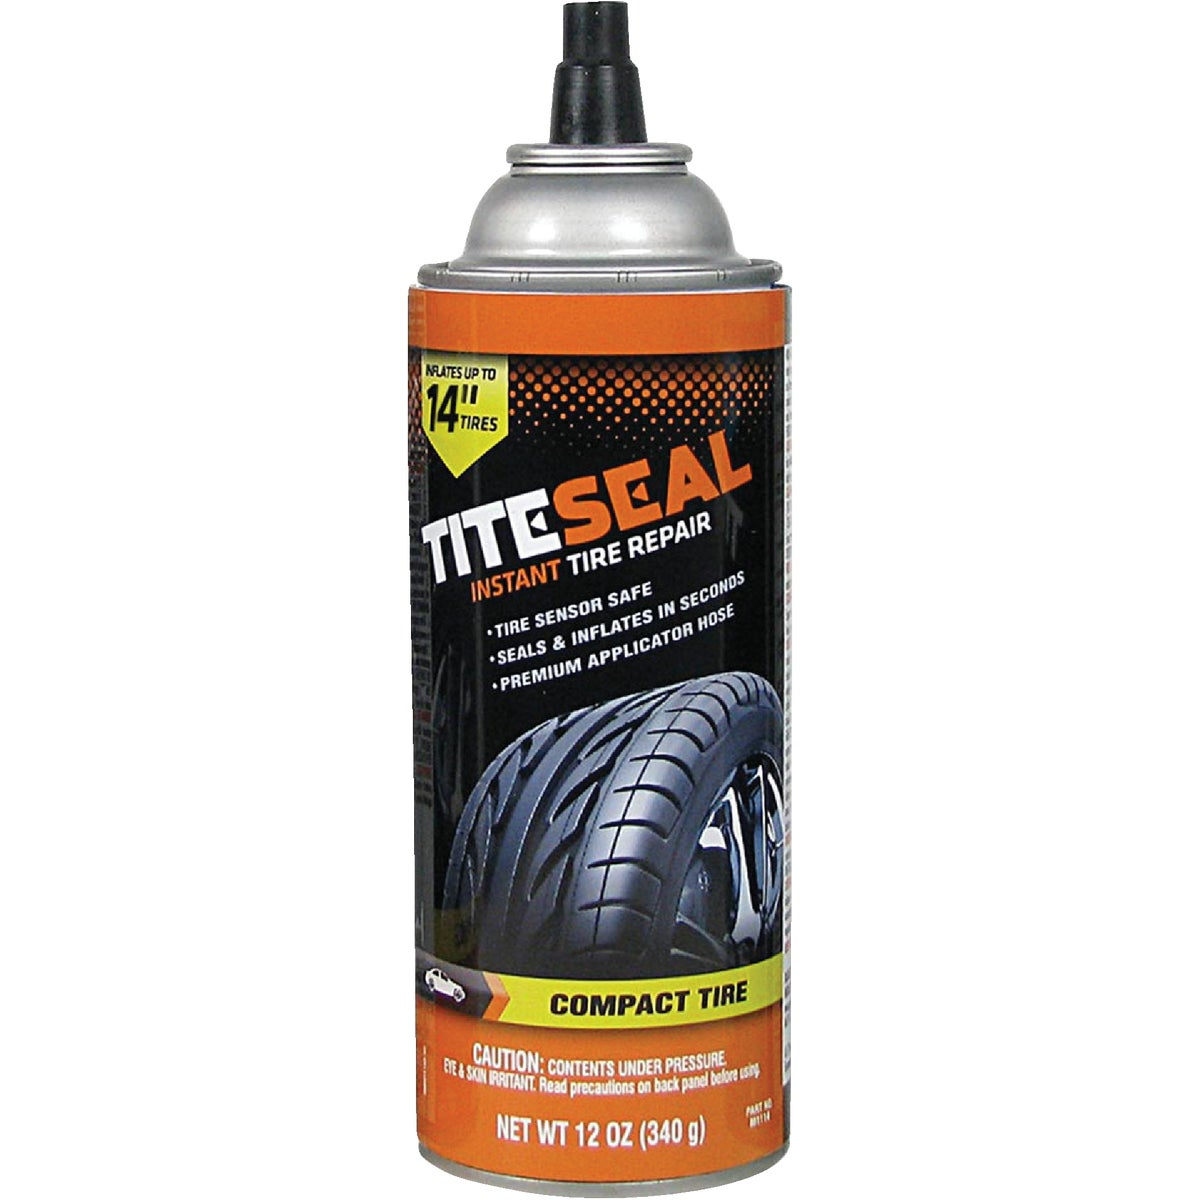 TIRE PUNCTURE SEAL - M1114/6 by Radiator Specialty